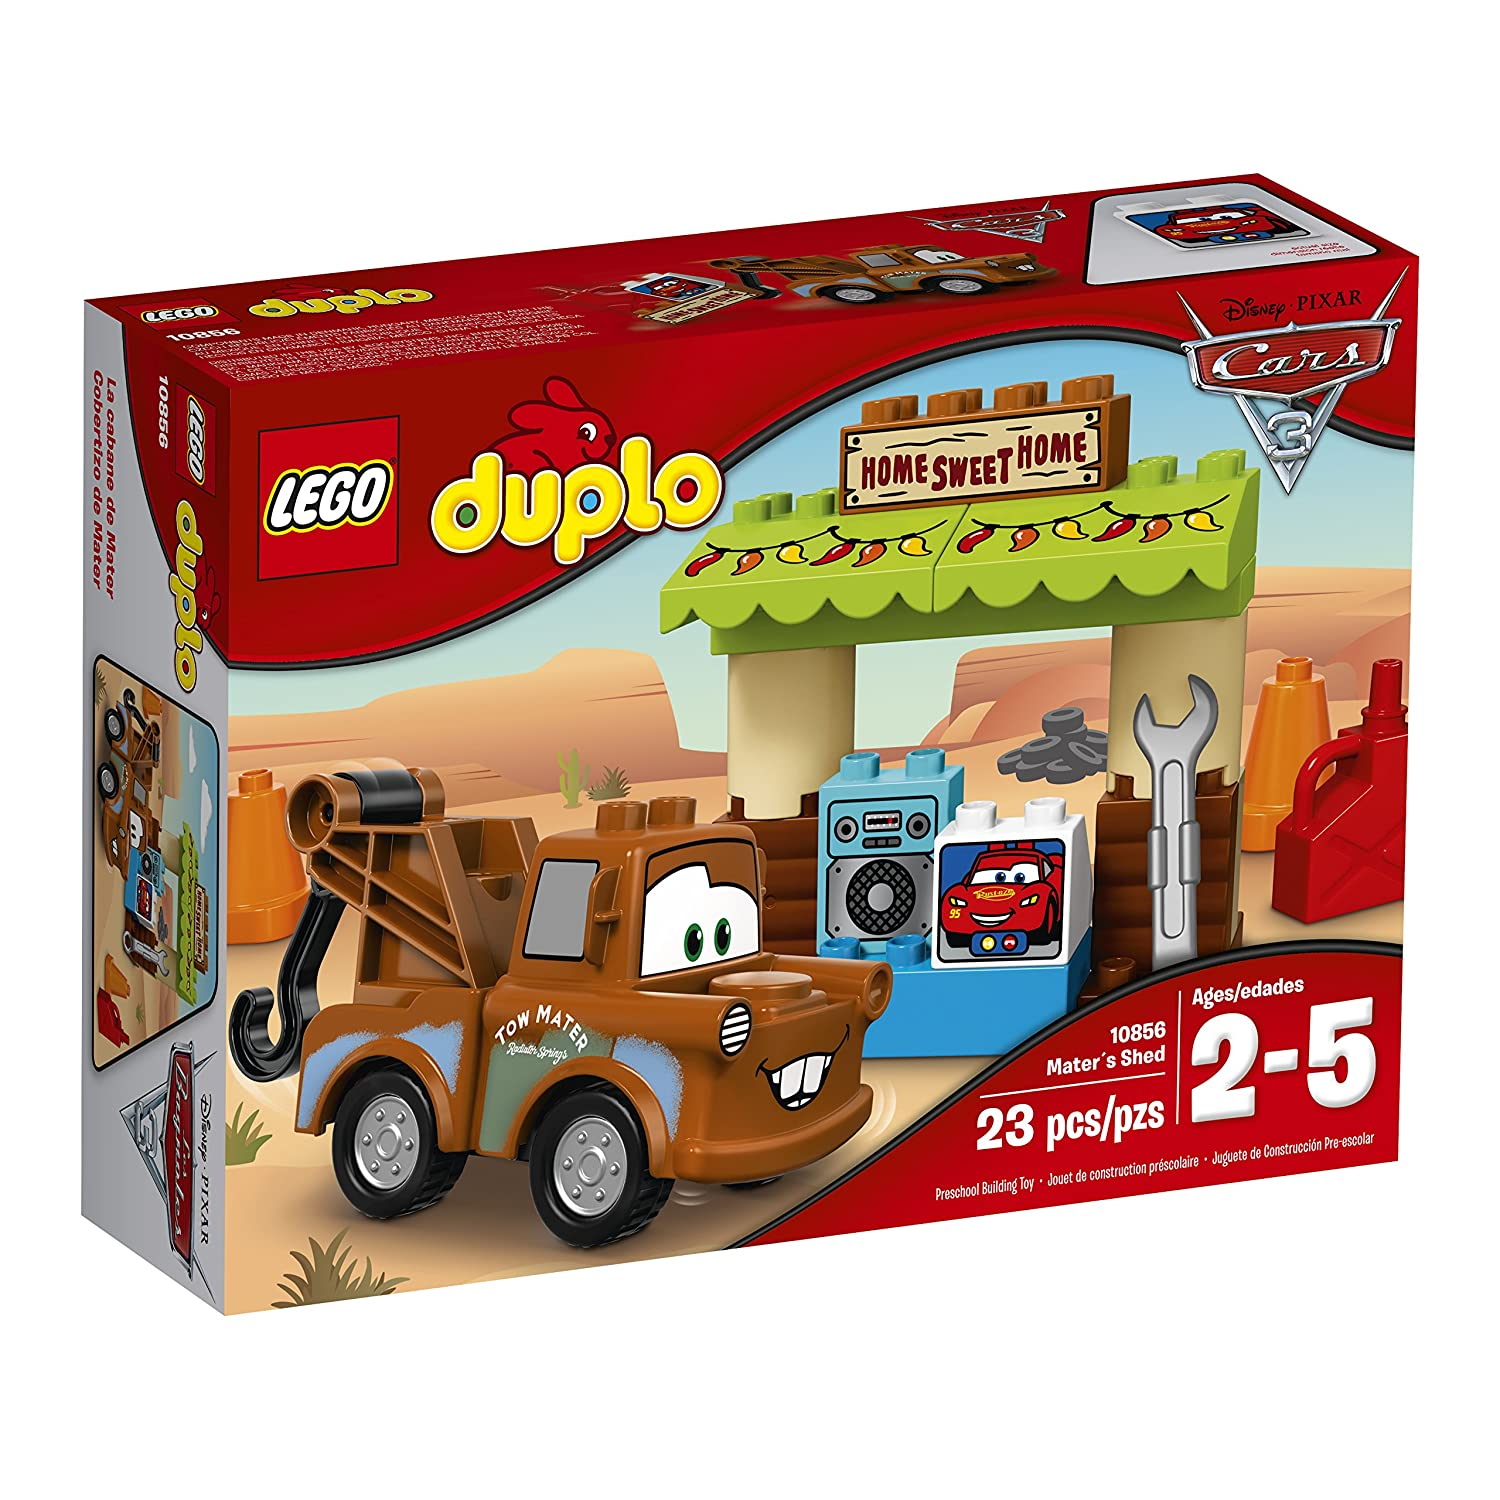 LEGO Duplo Creative Play Master Shed Toddler Cars 6174778